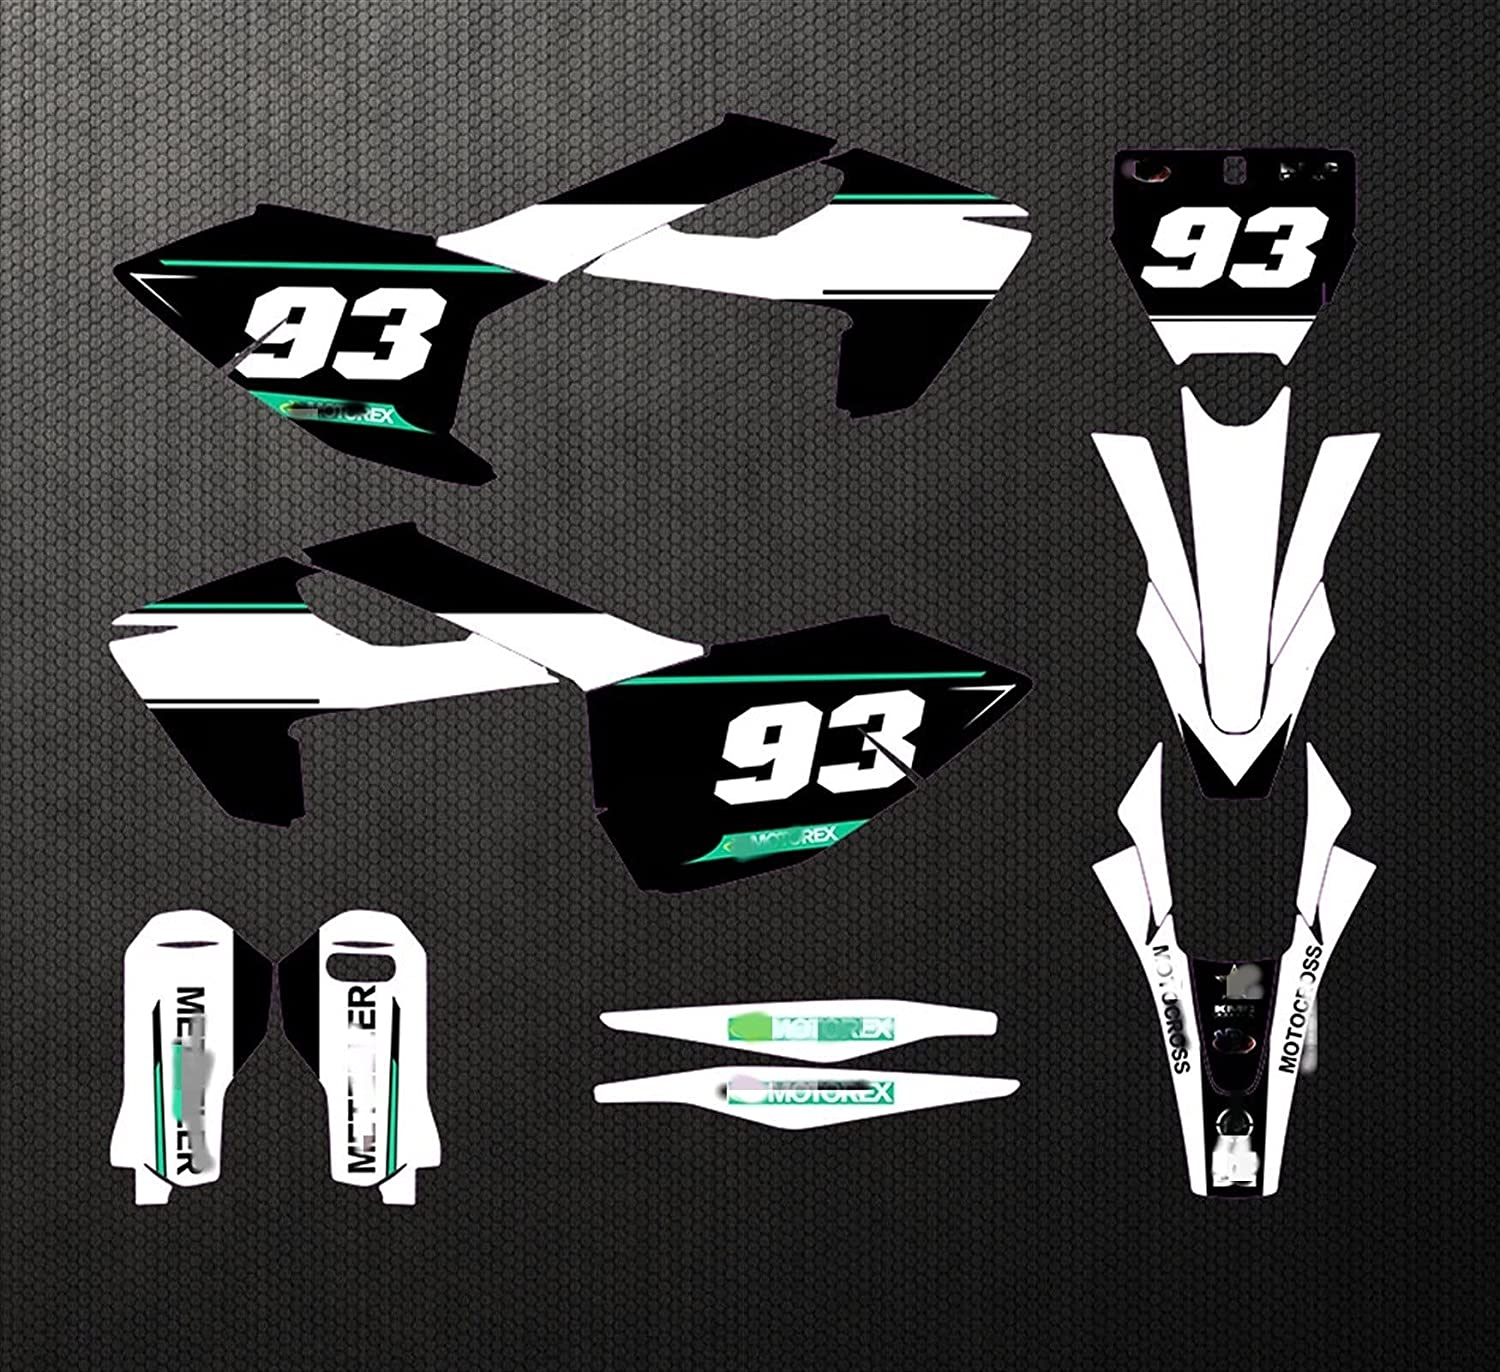 Lhtyouting CH0331F4-19 Customized 3M Stickers Motorcycle Super beauty product restock Max 45% OFF quality top Decals